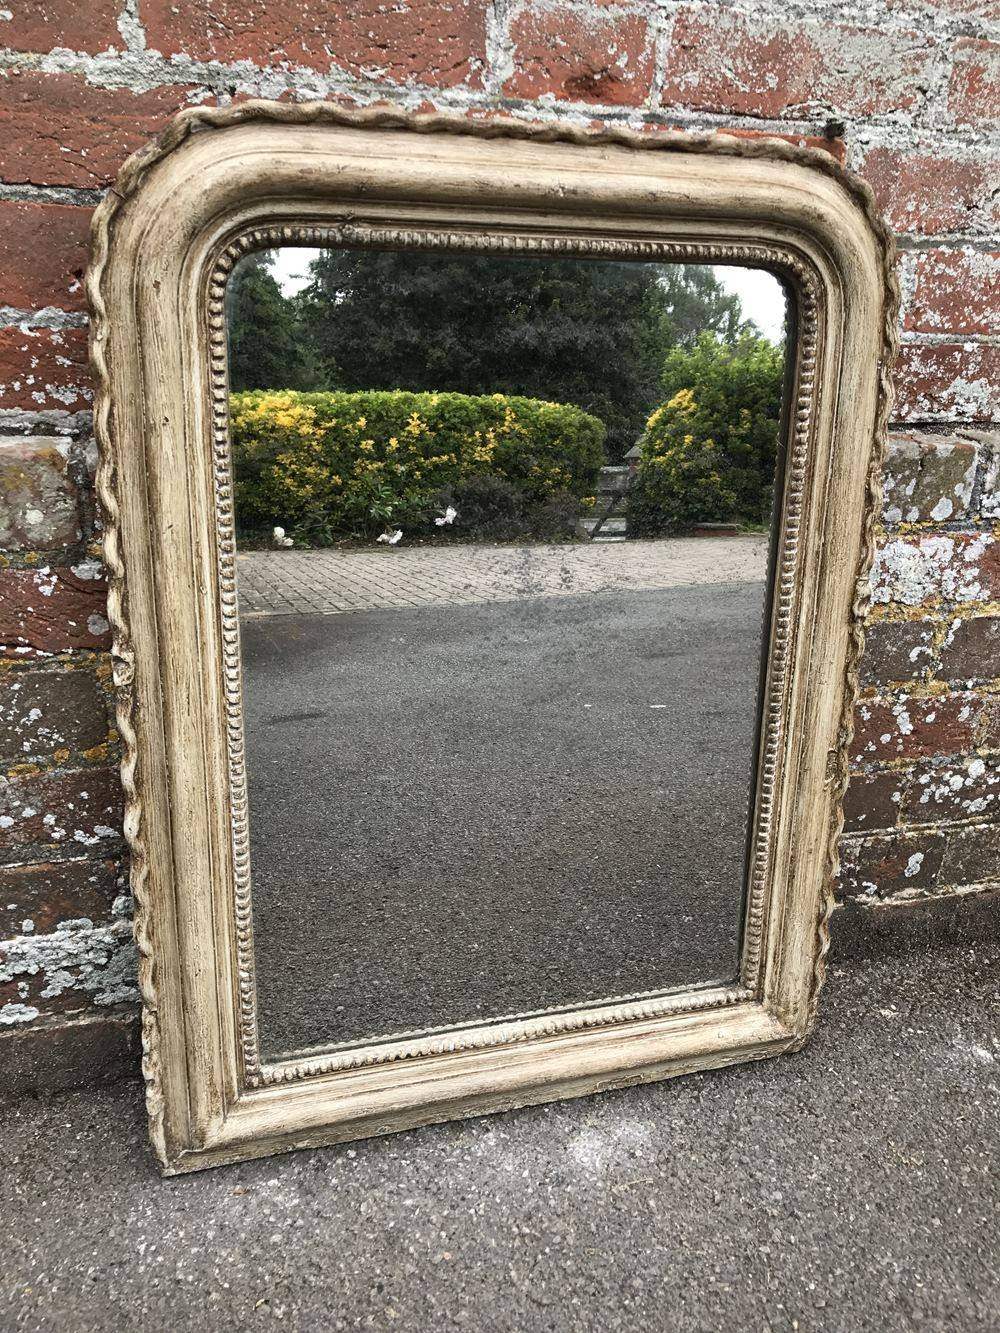 Antique French Distressed Painted Pie Crust Mirror. - Antique intended for Antique French Mirrors (Image 8 of 15)